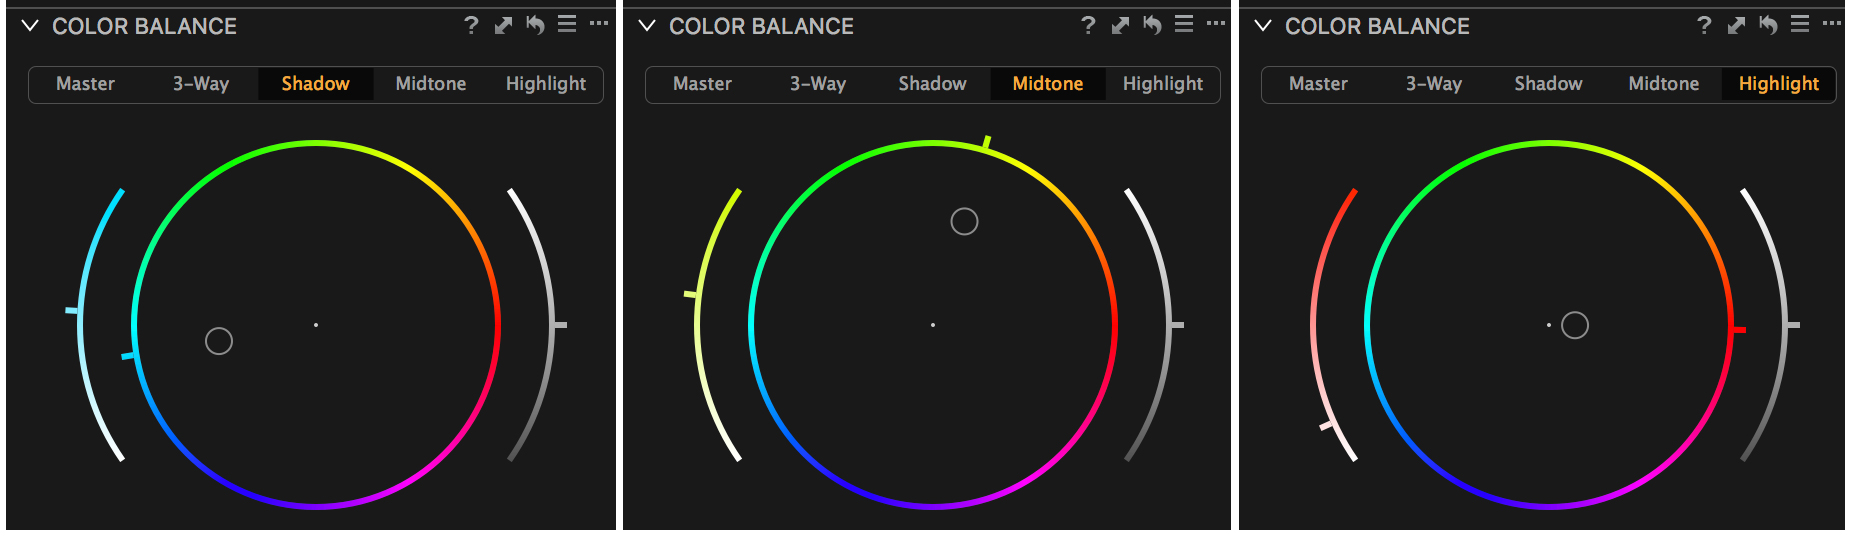 color balance capture one tutorial